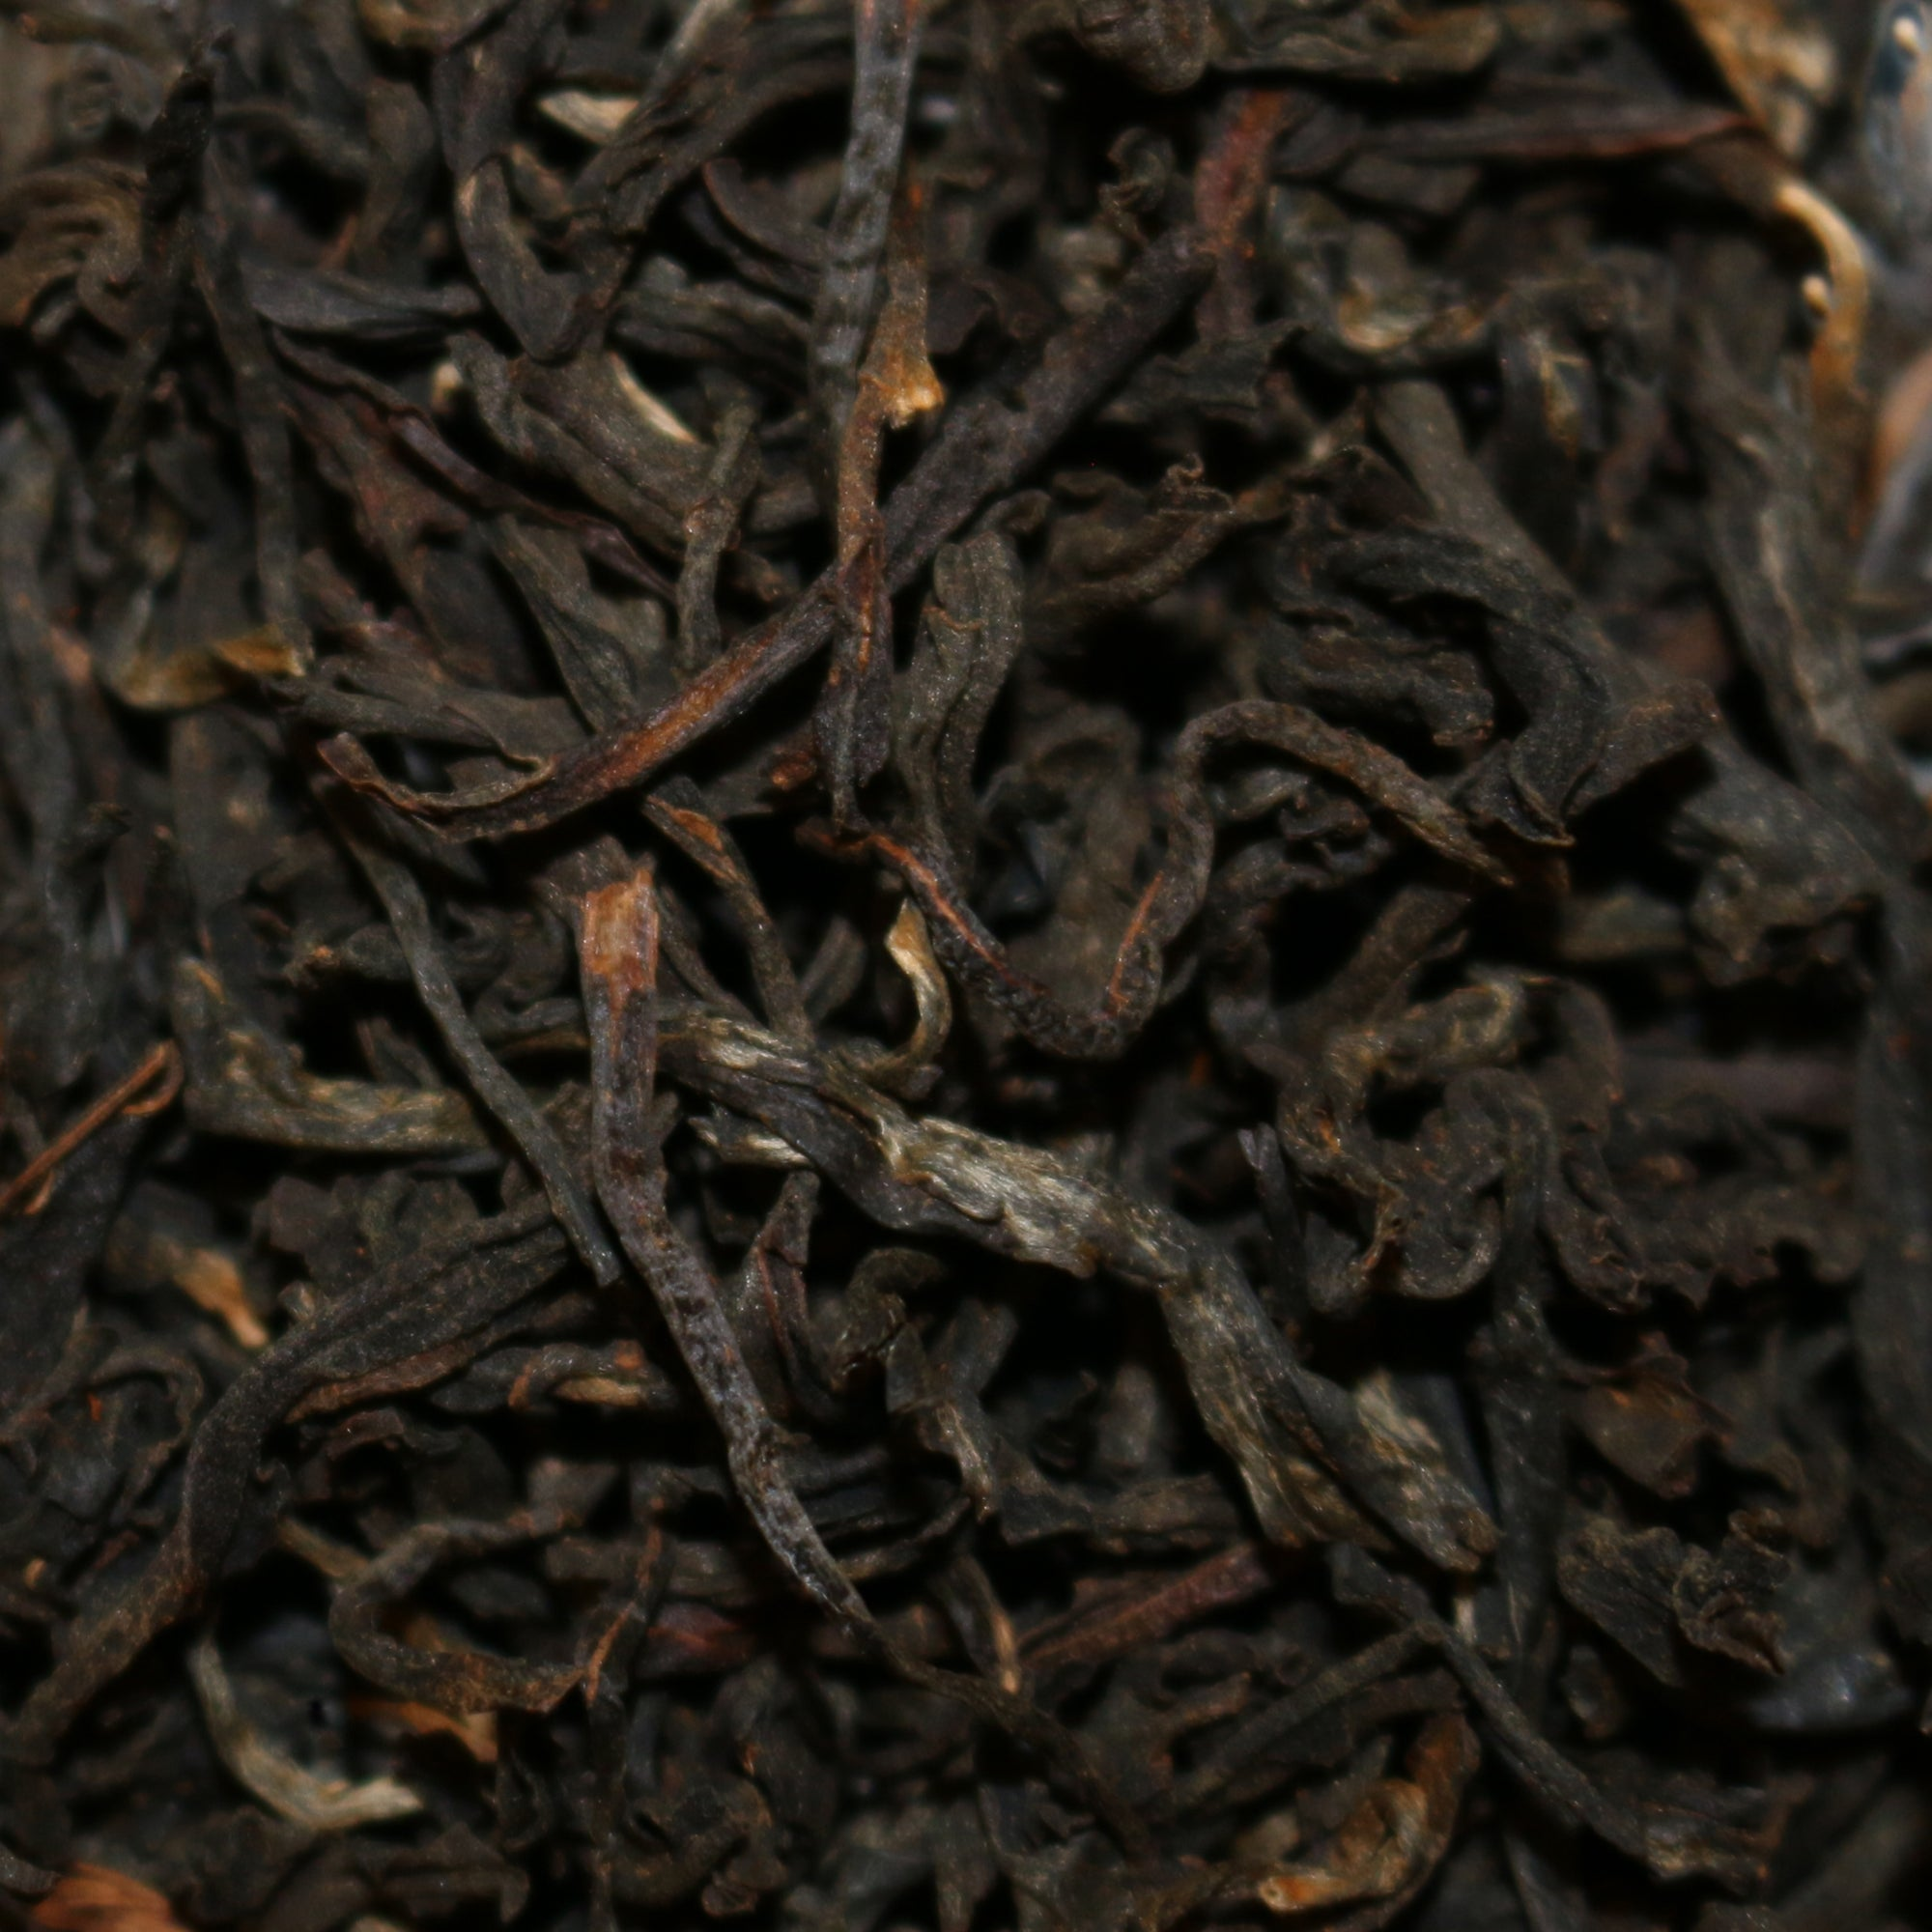 Wild Grown Ancient Tree Vietnam Black Tea